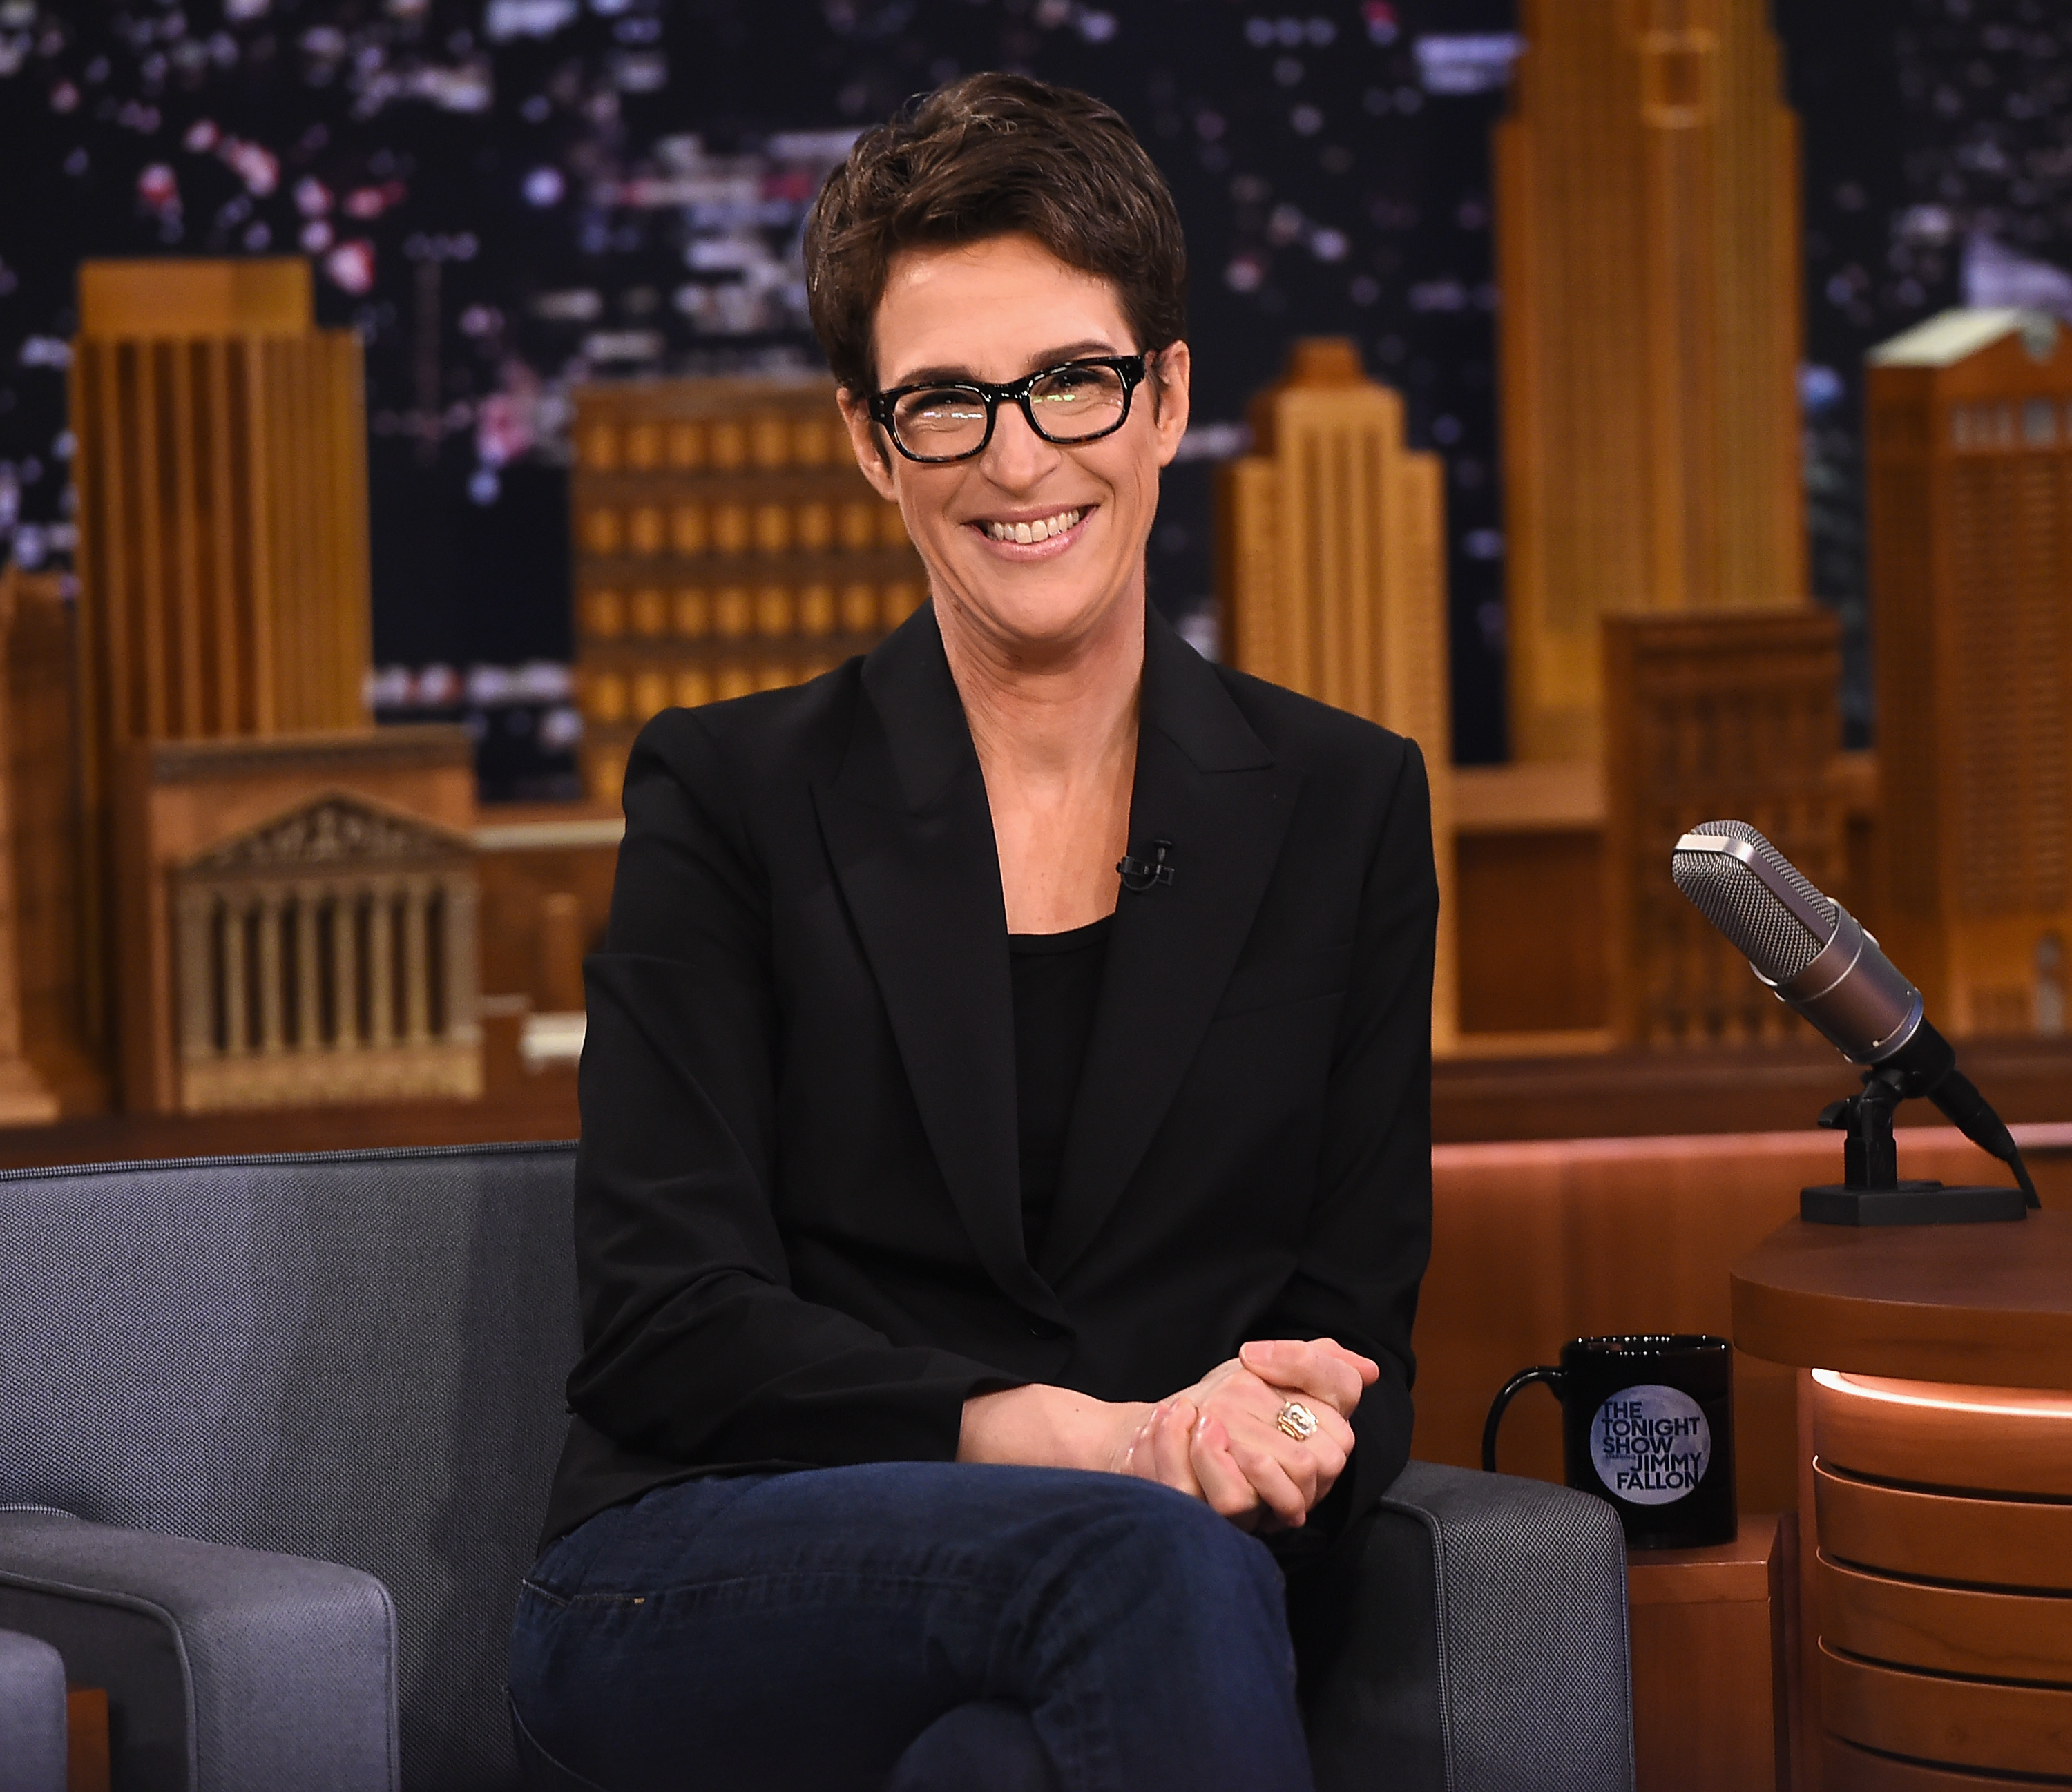 """Rachel Maddow visits """"The Tonight Show Starring Jimmy Fallon"""" on March 15, 2017 in New York City. (Theo Wargo/Getty Images for NBC)"""